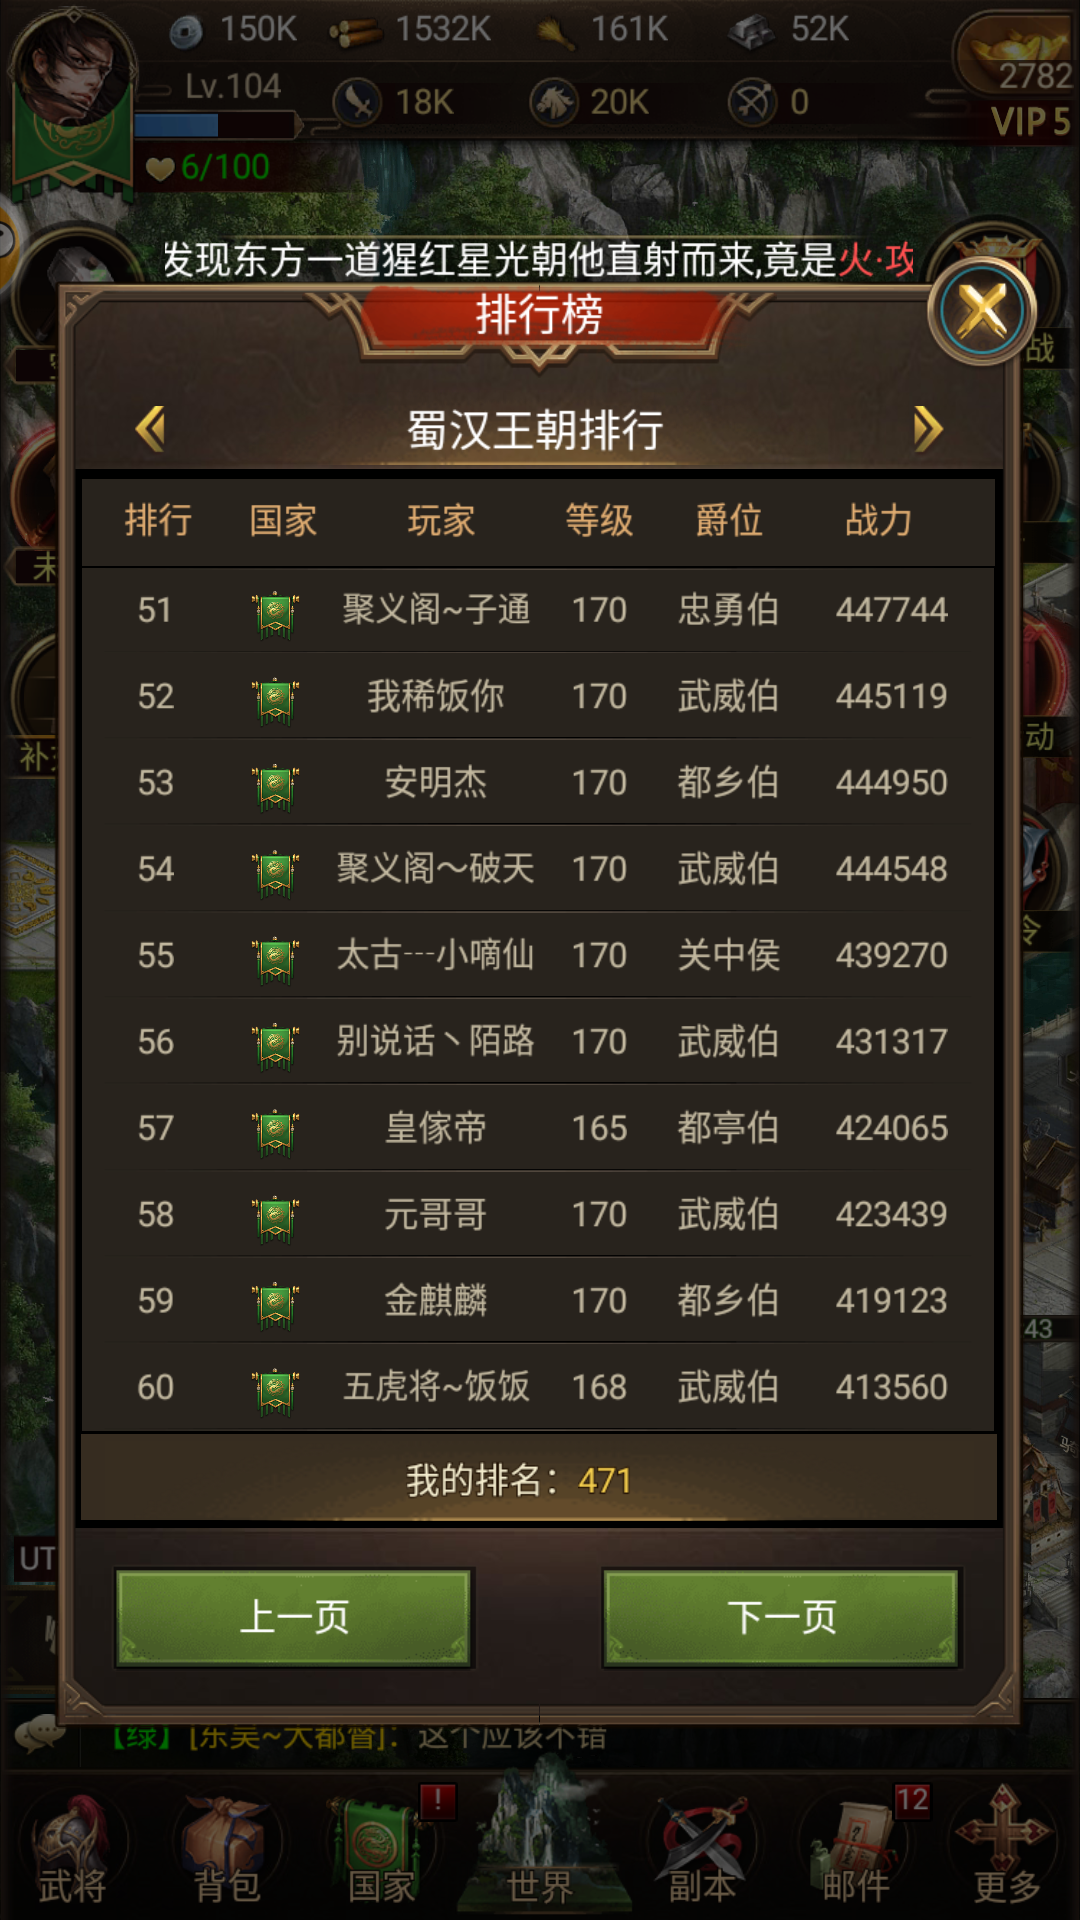 Screenshot_2019-06-30-20-26-31-793_com.juedigame.sgdjl.shoumeng.png